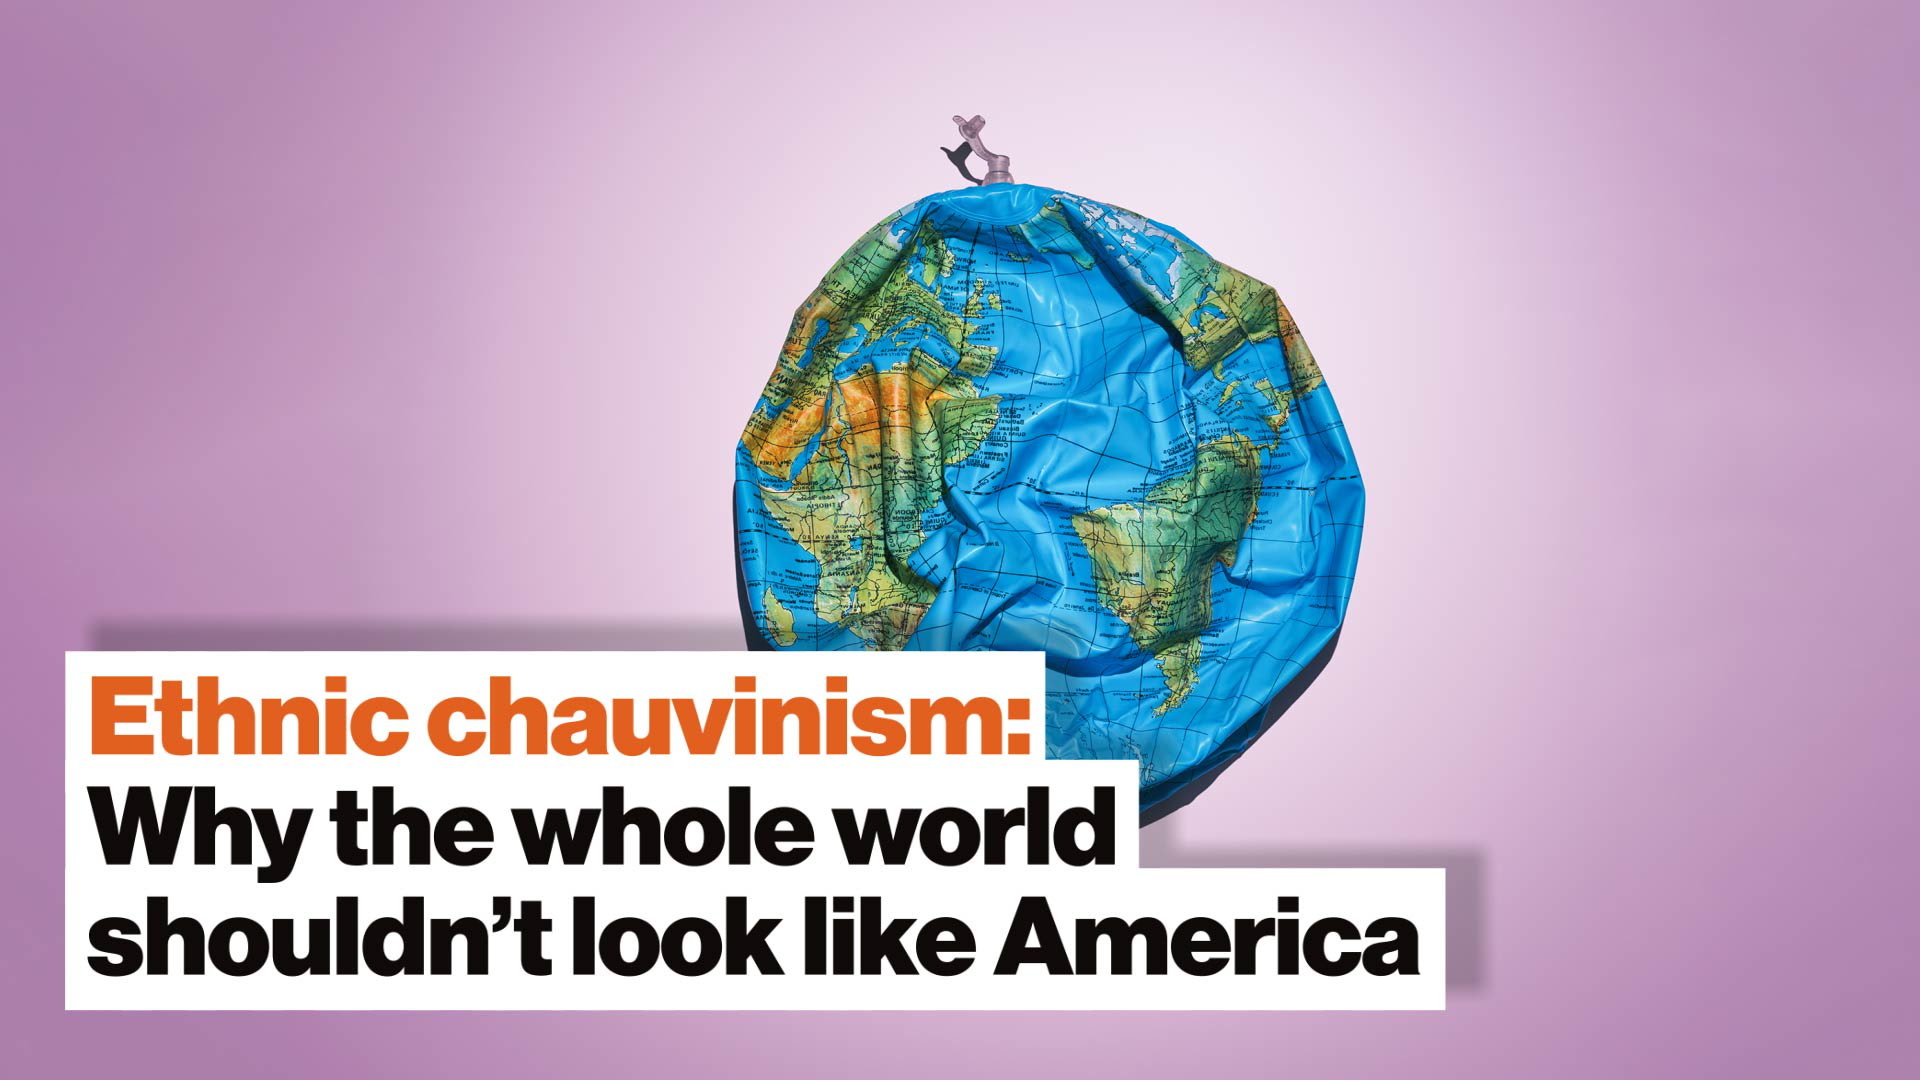 Ethnic chauvinism: Why the whole world shouldn't look like America